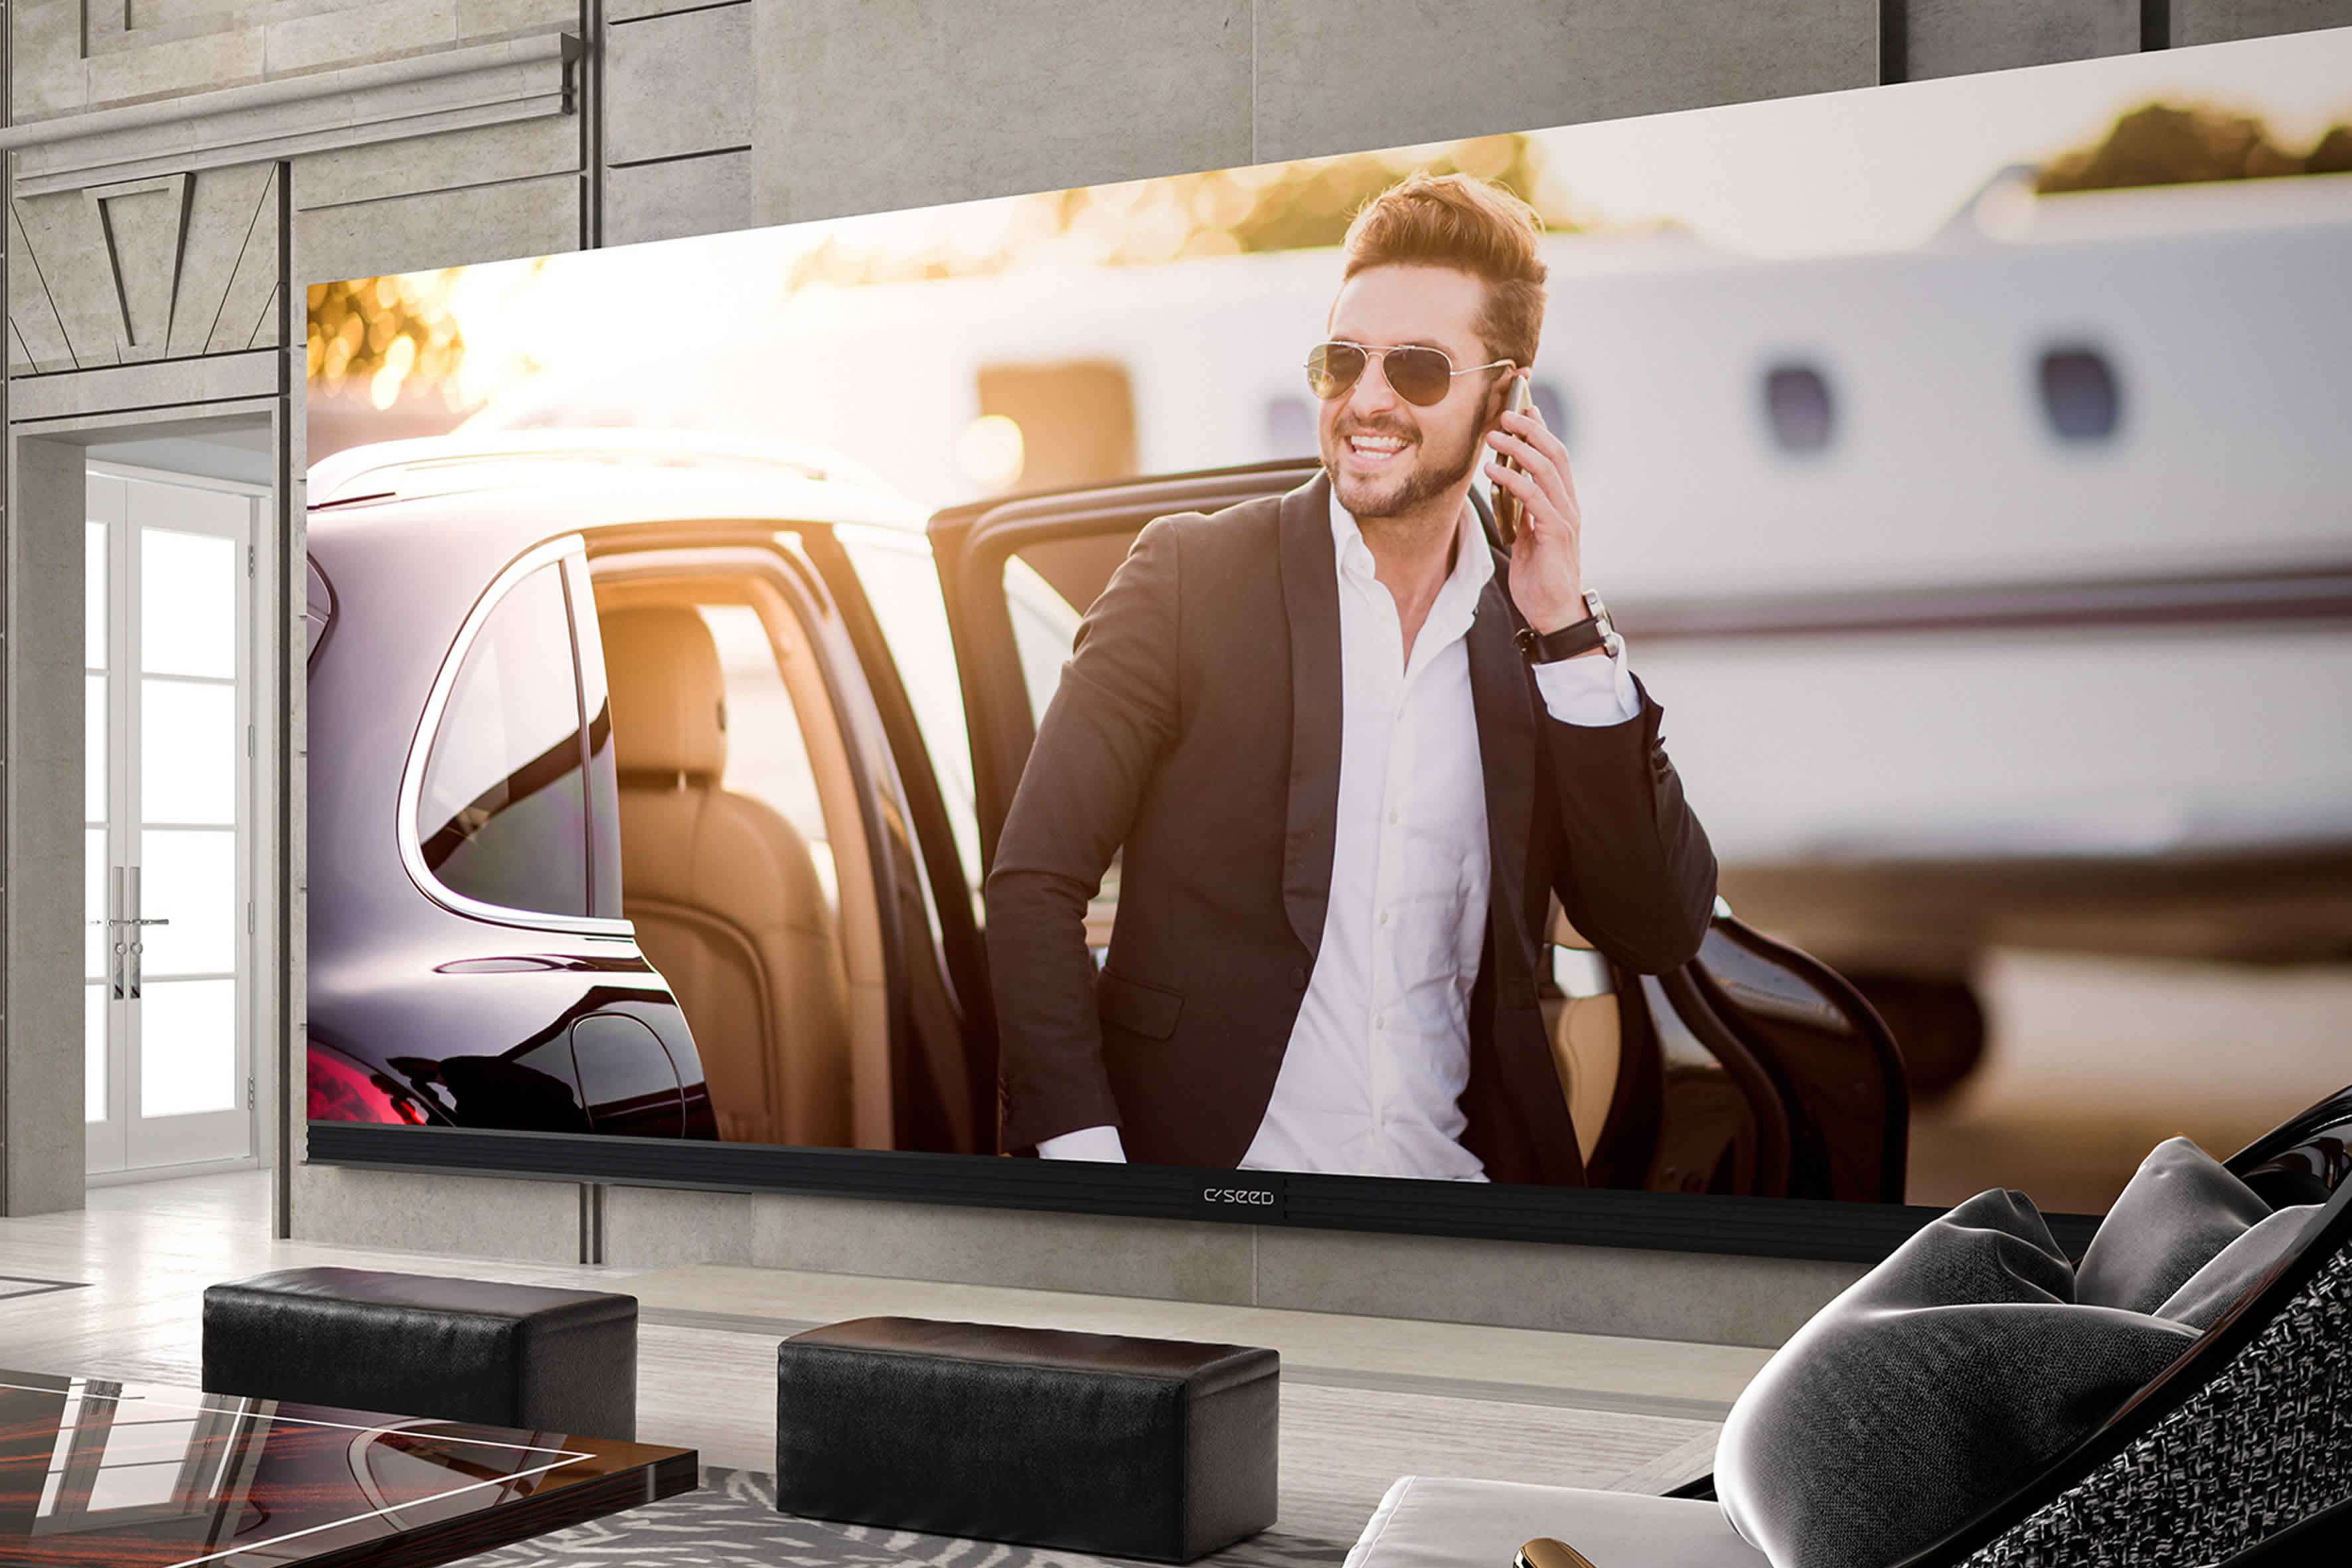 The biggest 4K TV you can buy makes your 100-inch TV look like a baby monitor